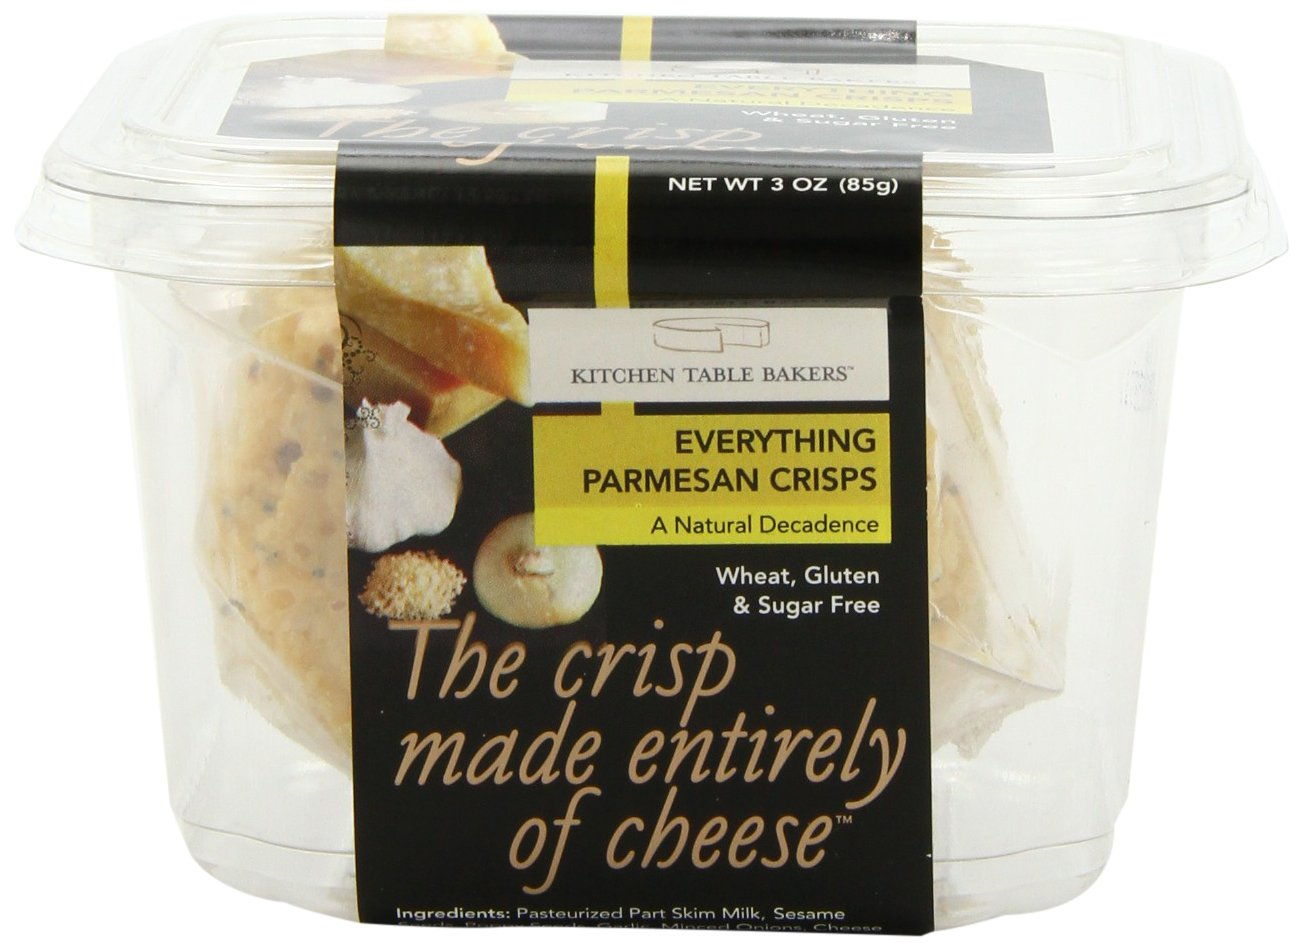 Kitchen Table Bakers Everything Parmesan Parmesan Crisps, 3-Ounce Packages (Pack of 4)